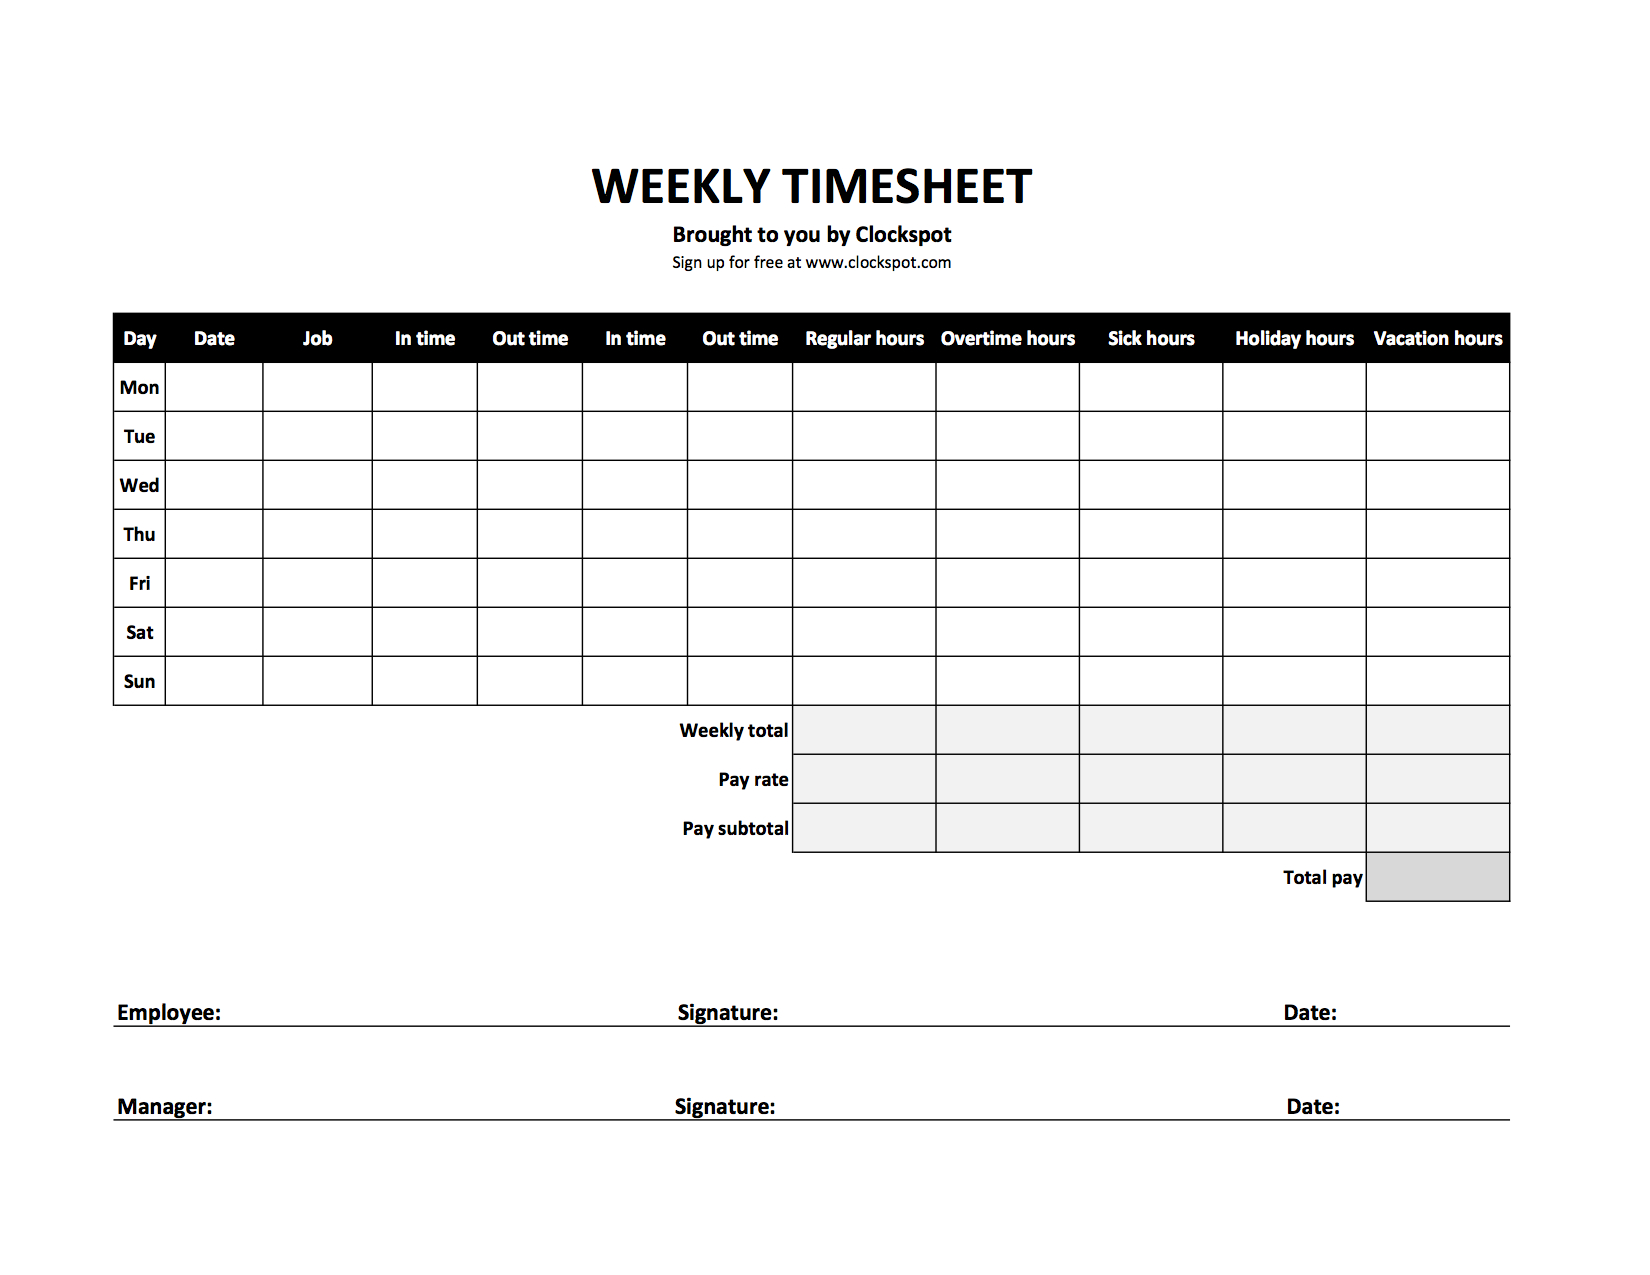 Tracking Hours Worked Spreadsheet In Free Time Tracking Spreadsheets  Excel Timesheet Templates